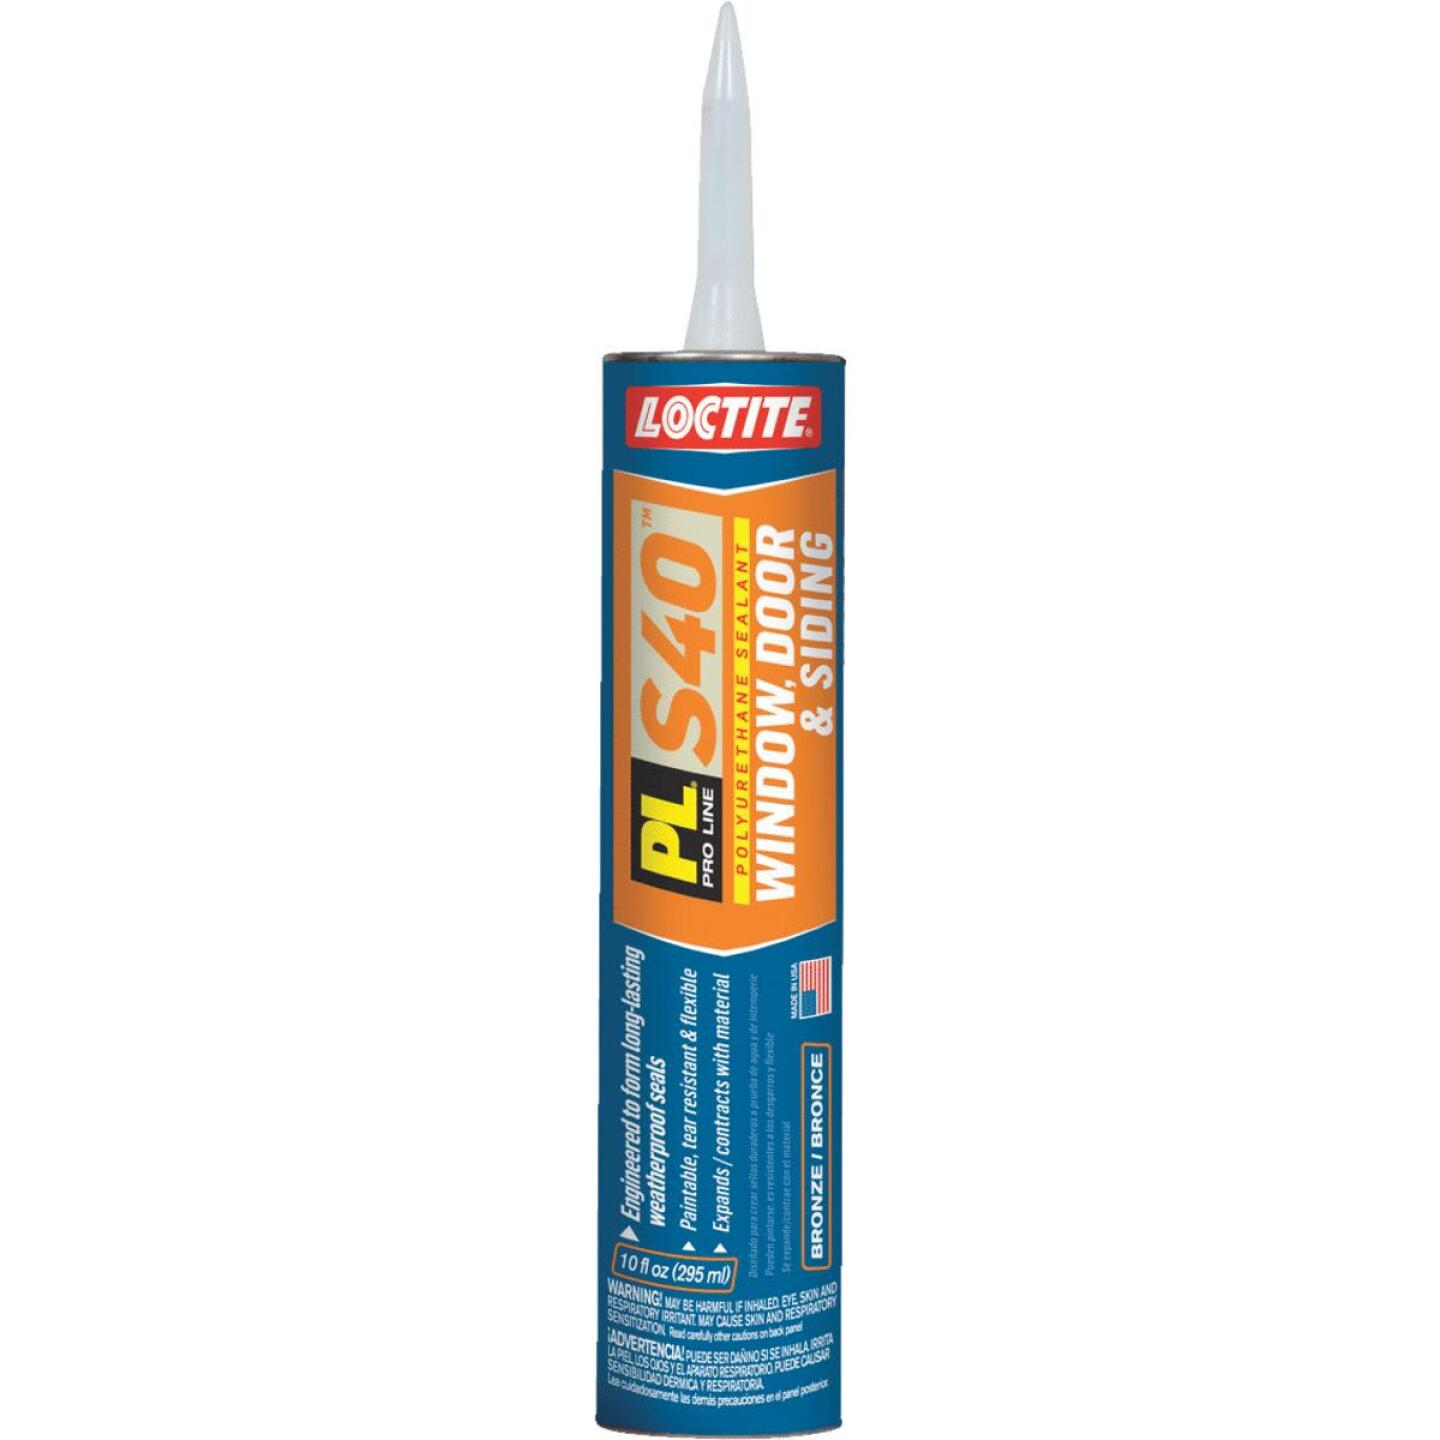 LOCTITE PL S40 10 Oz. Polyurethane Window, Door, & Siding Sealant, Bronze Image 1